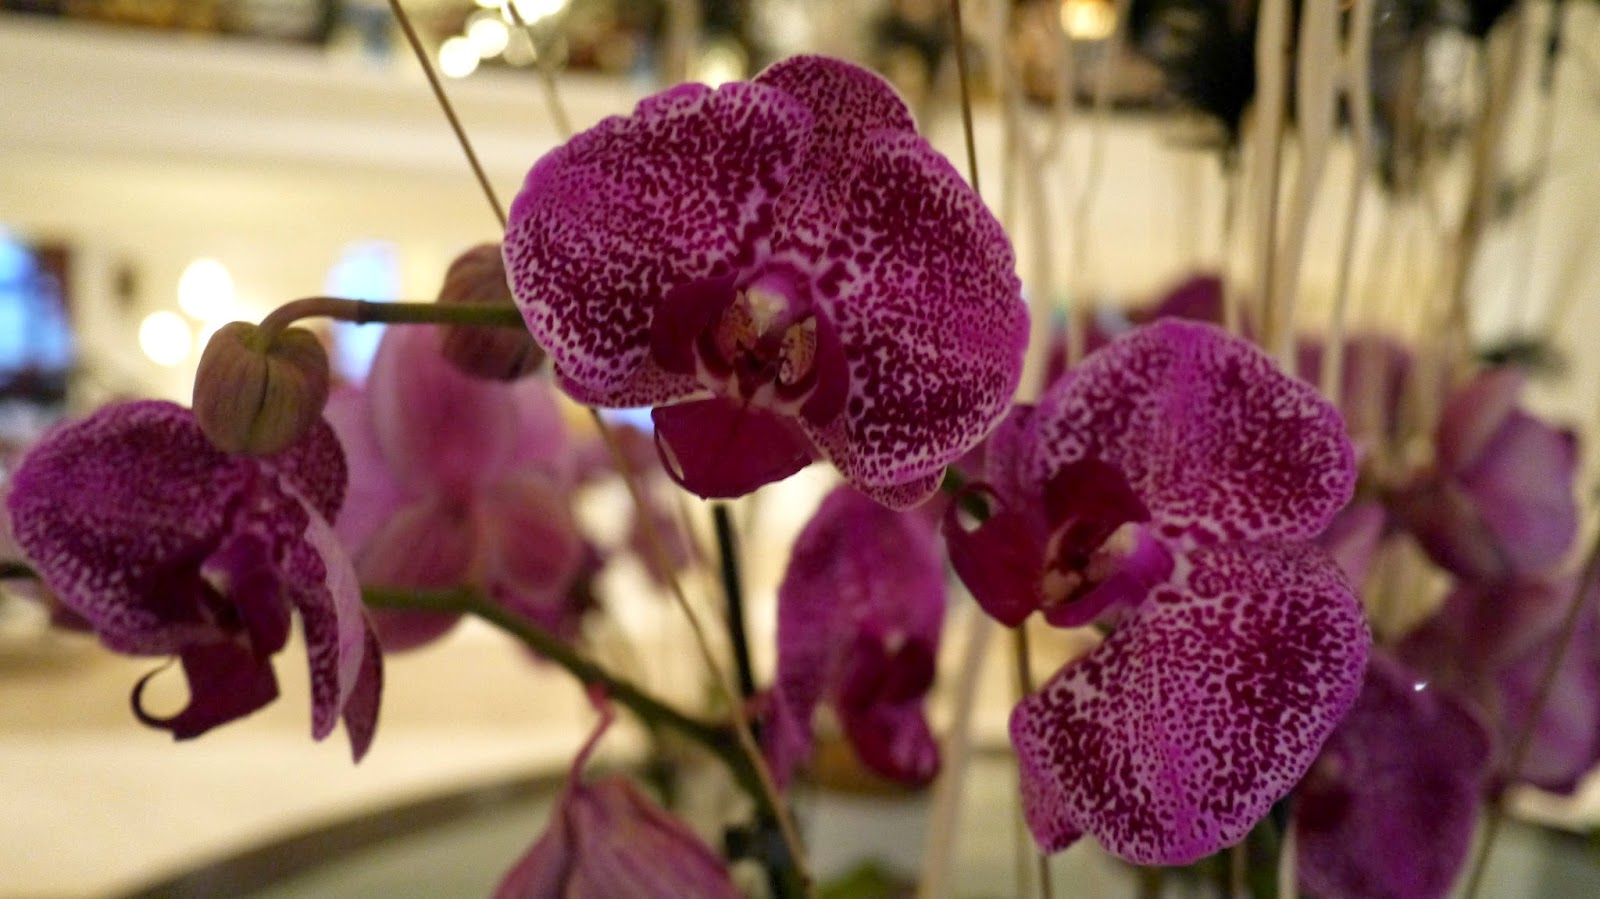 The Corinthia hotel budapest orchids